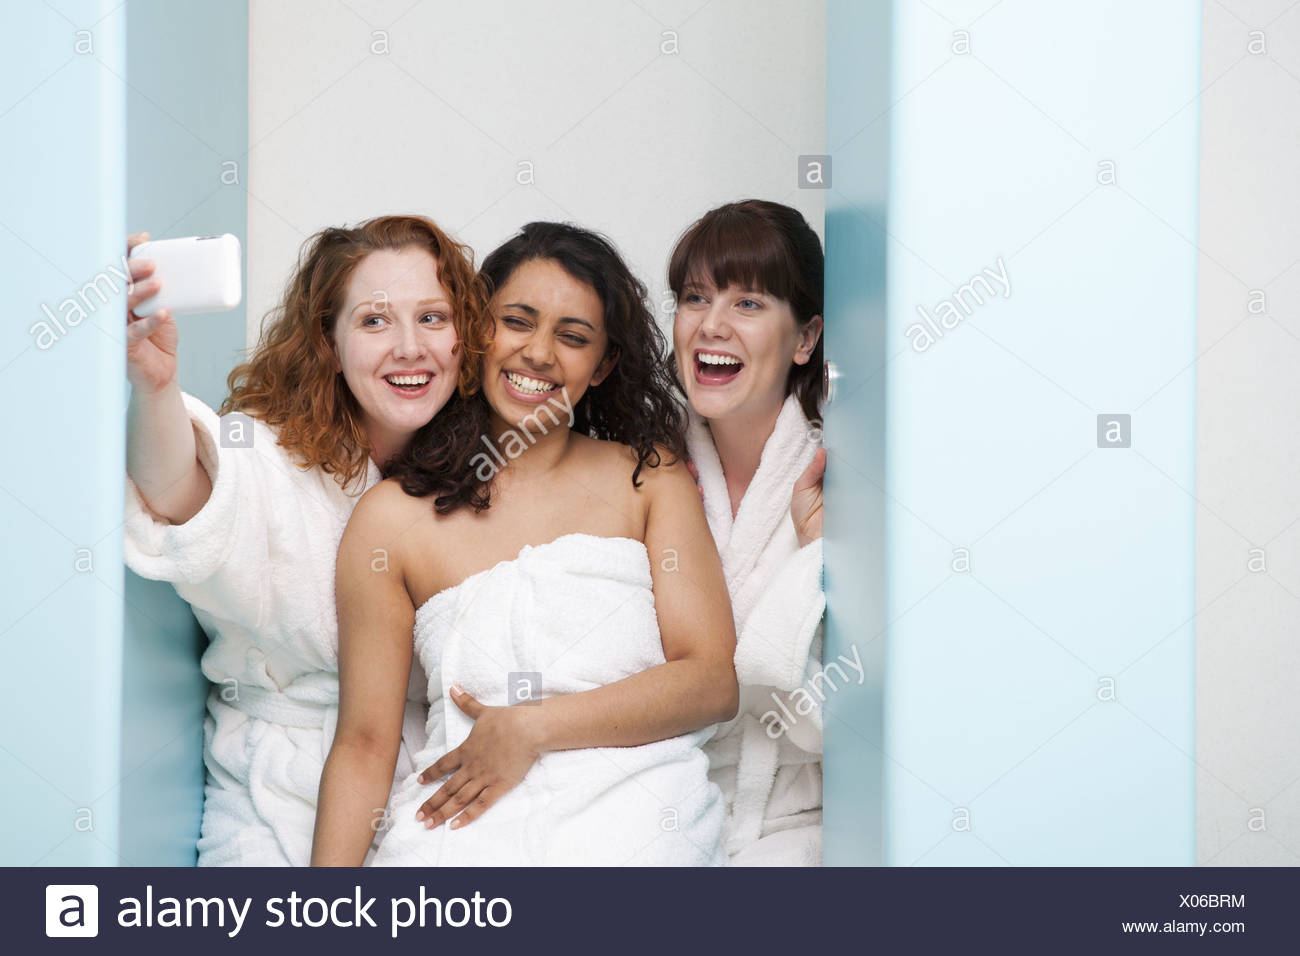 Women taking pictures in locker room - Stock Image